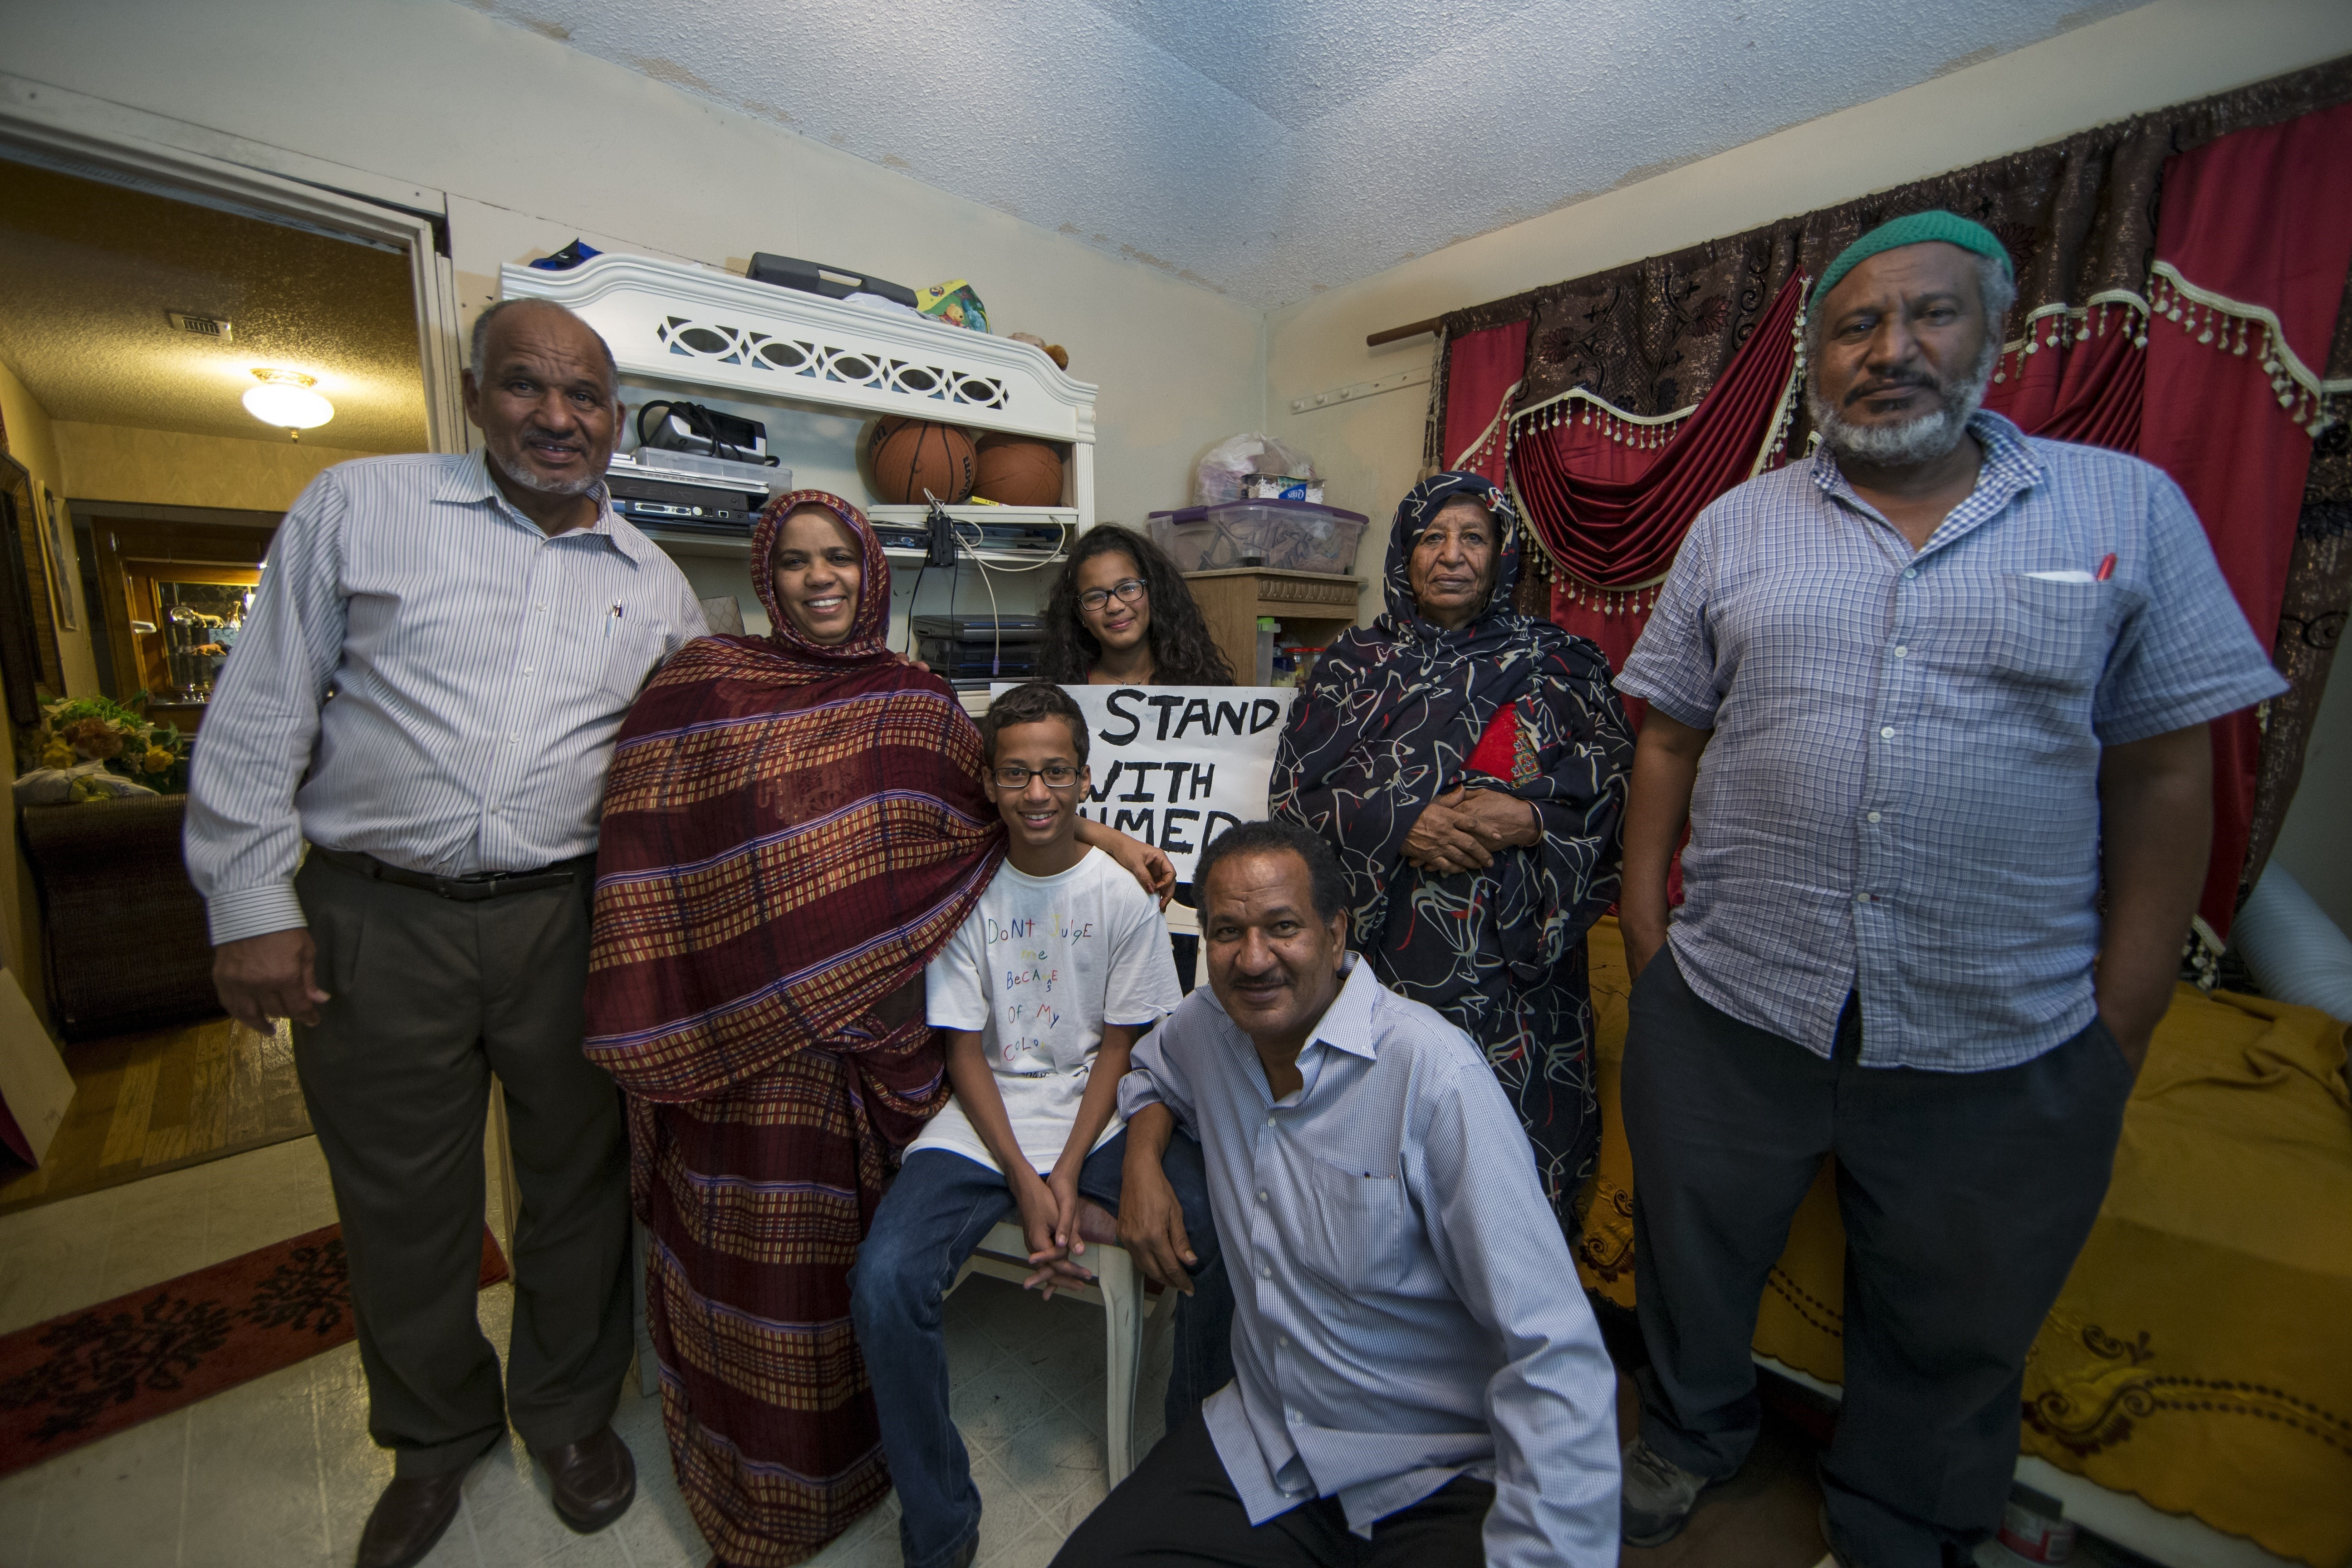 Ahmed Mohamed (L 3), a Texas Muslim teen arrested after taking his homemade clock to school, poses next to his family members at his house in Irving, Texas on Sept. 17, 2015.